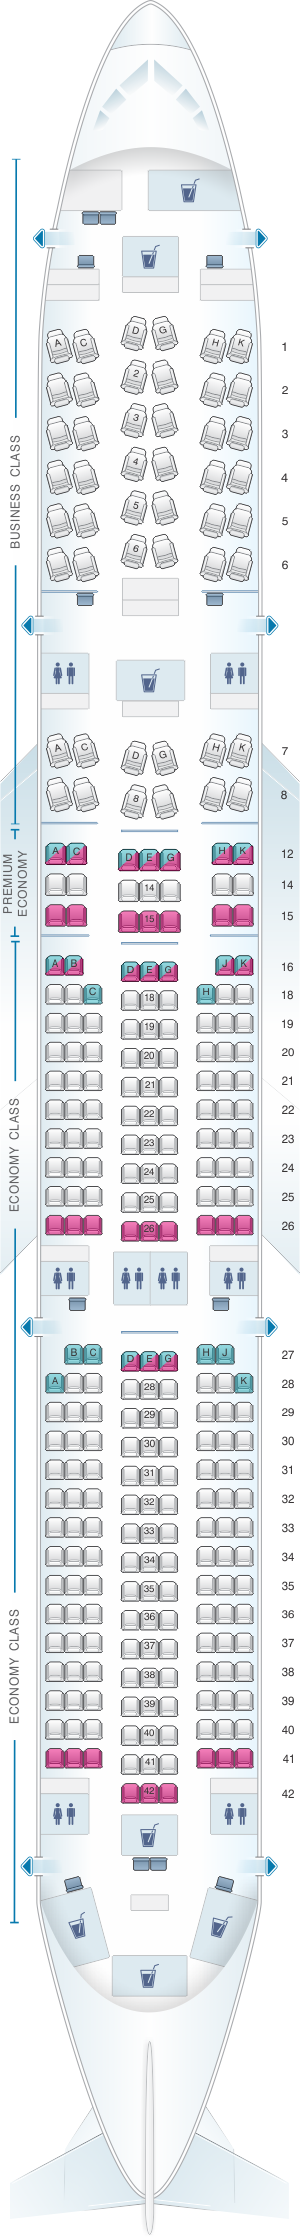 Seat map for Lufthansa Airbus A350 900 Config.1